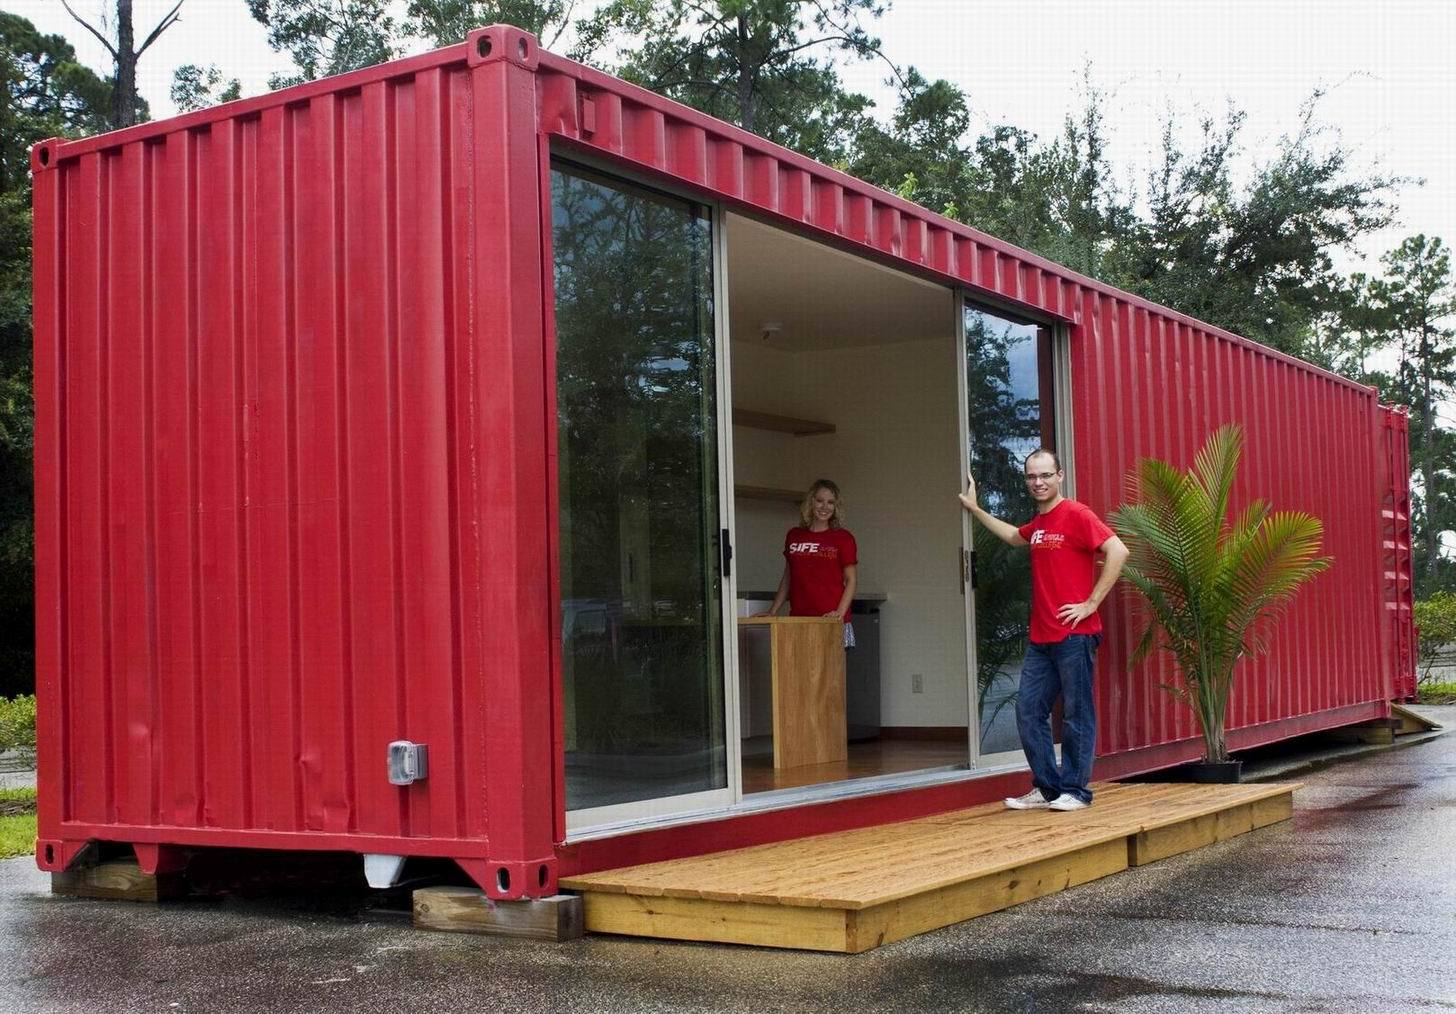 Used 40 shipping storage container for sale 1695 packrat promo code moving help discount - Are shipping container homes safe ...